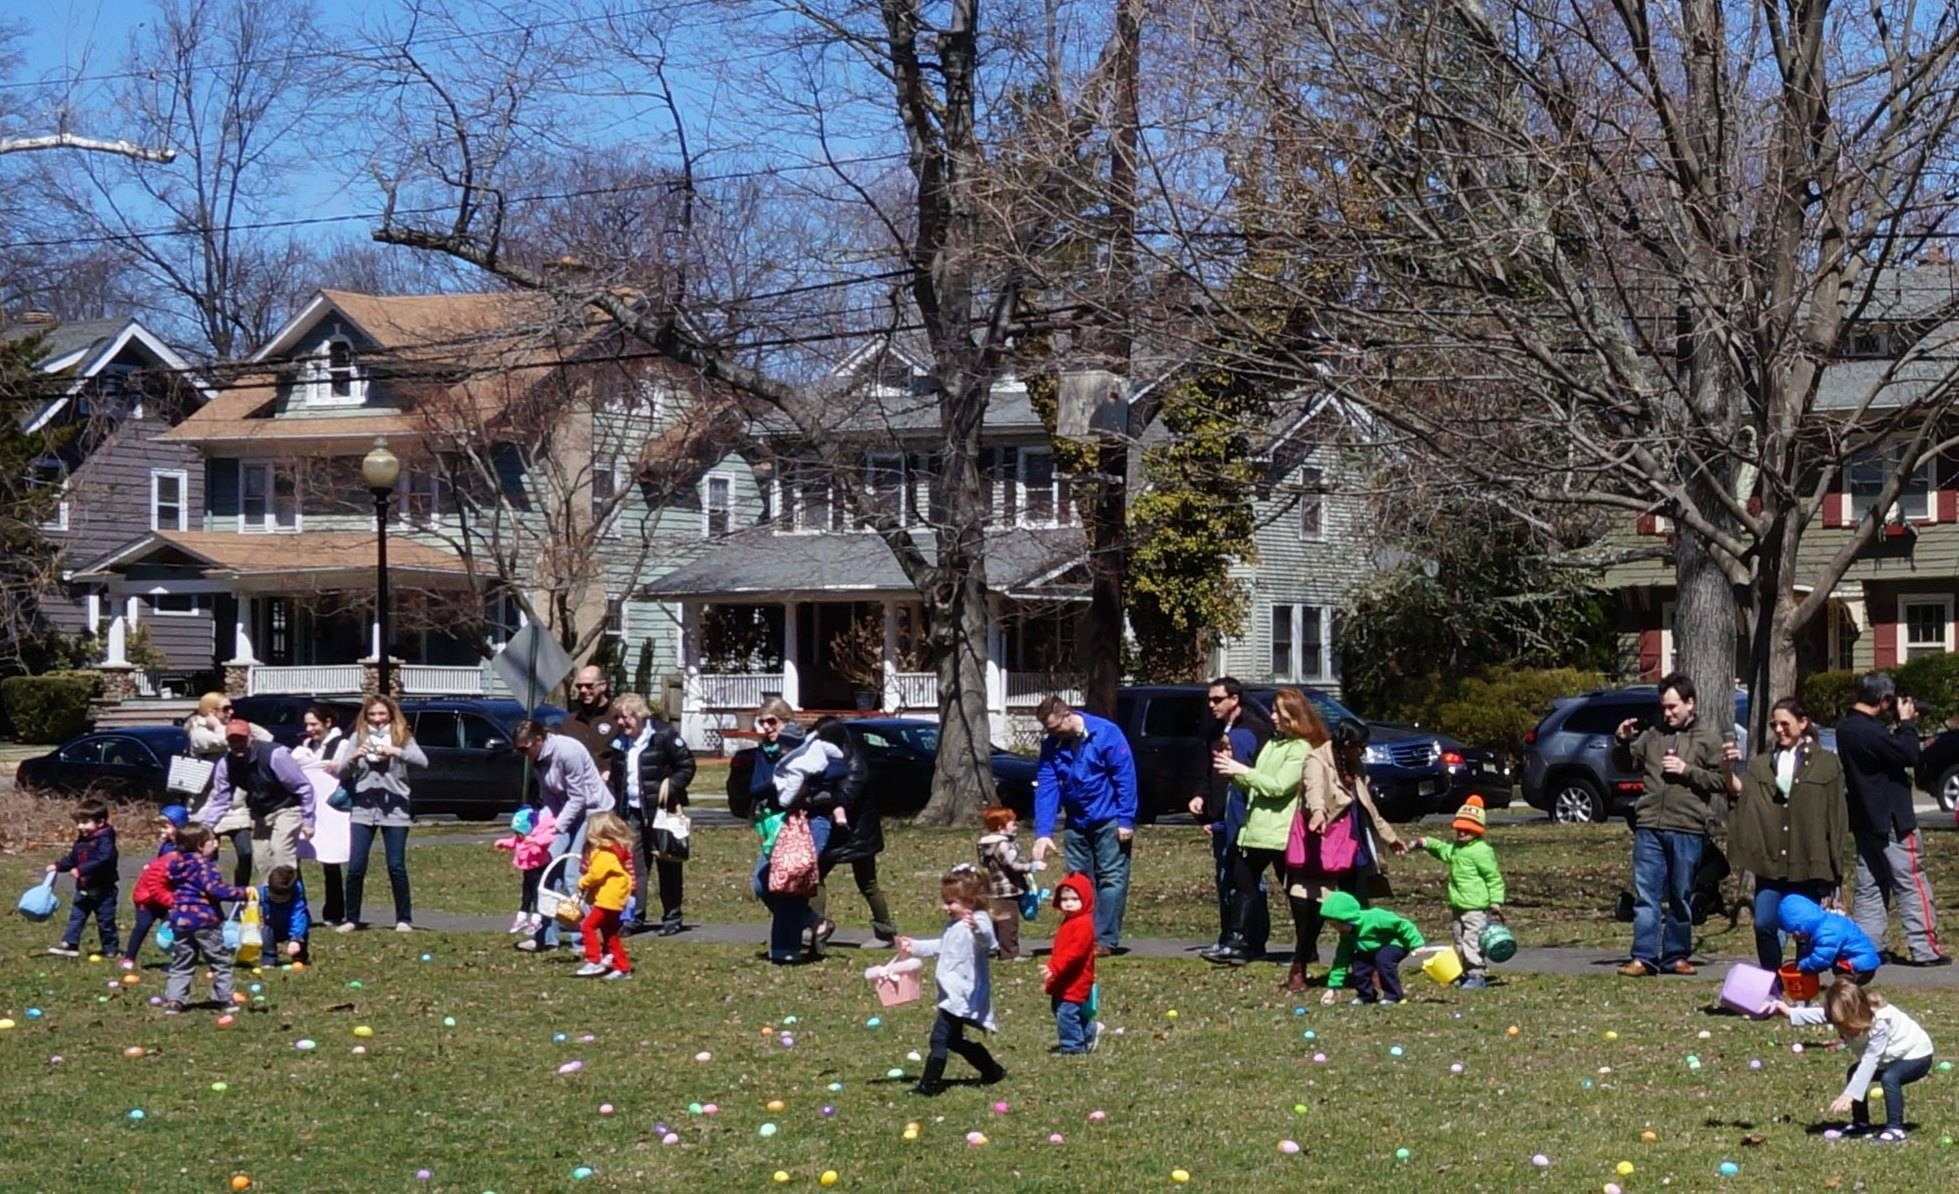 Adults scour park for prizes in adult-only Easter egg hunt